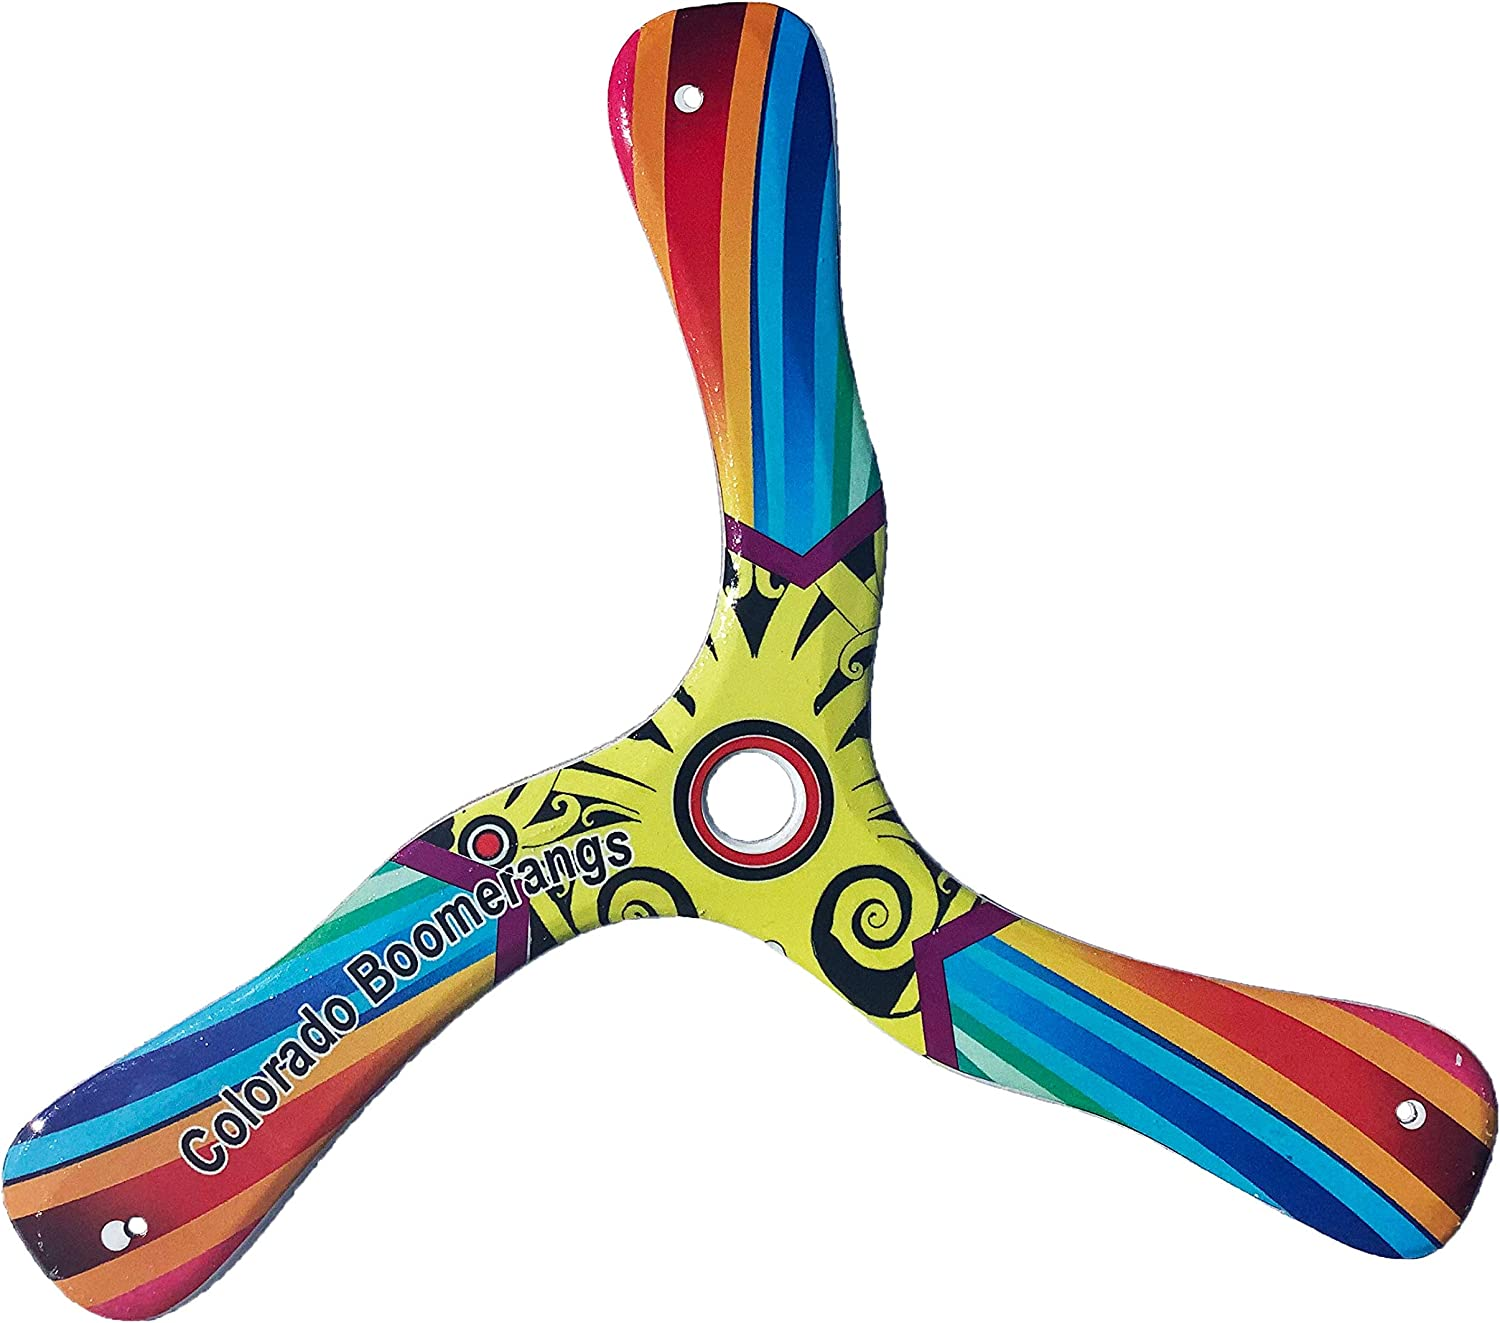 Kuzco Boomerang - Right Now free shipping Handed Teens Today's only Boomerangs for Adults and